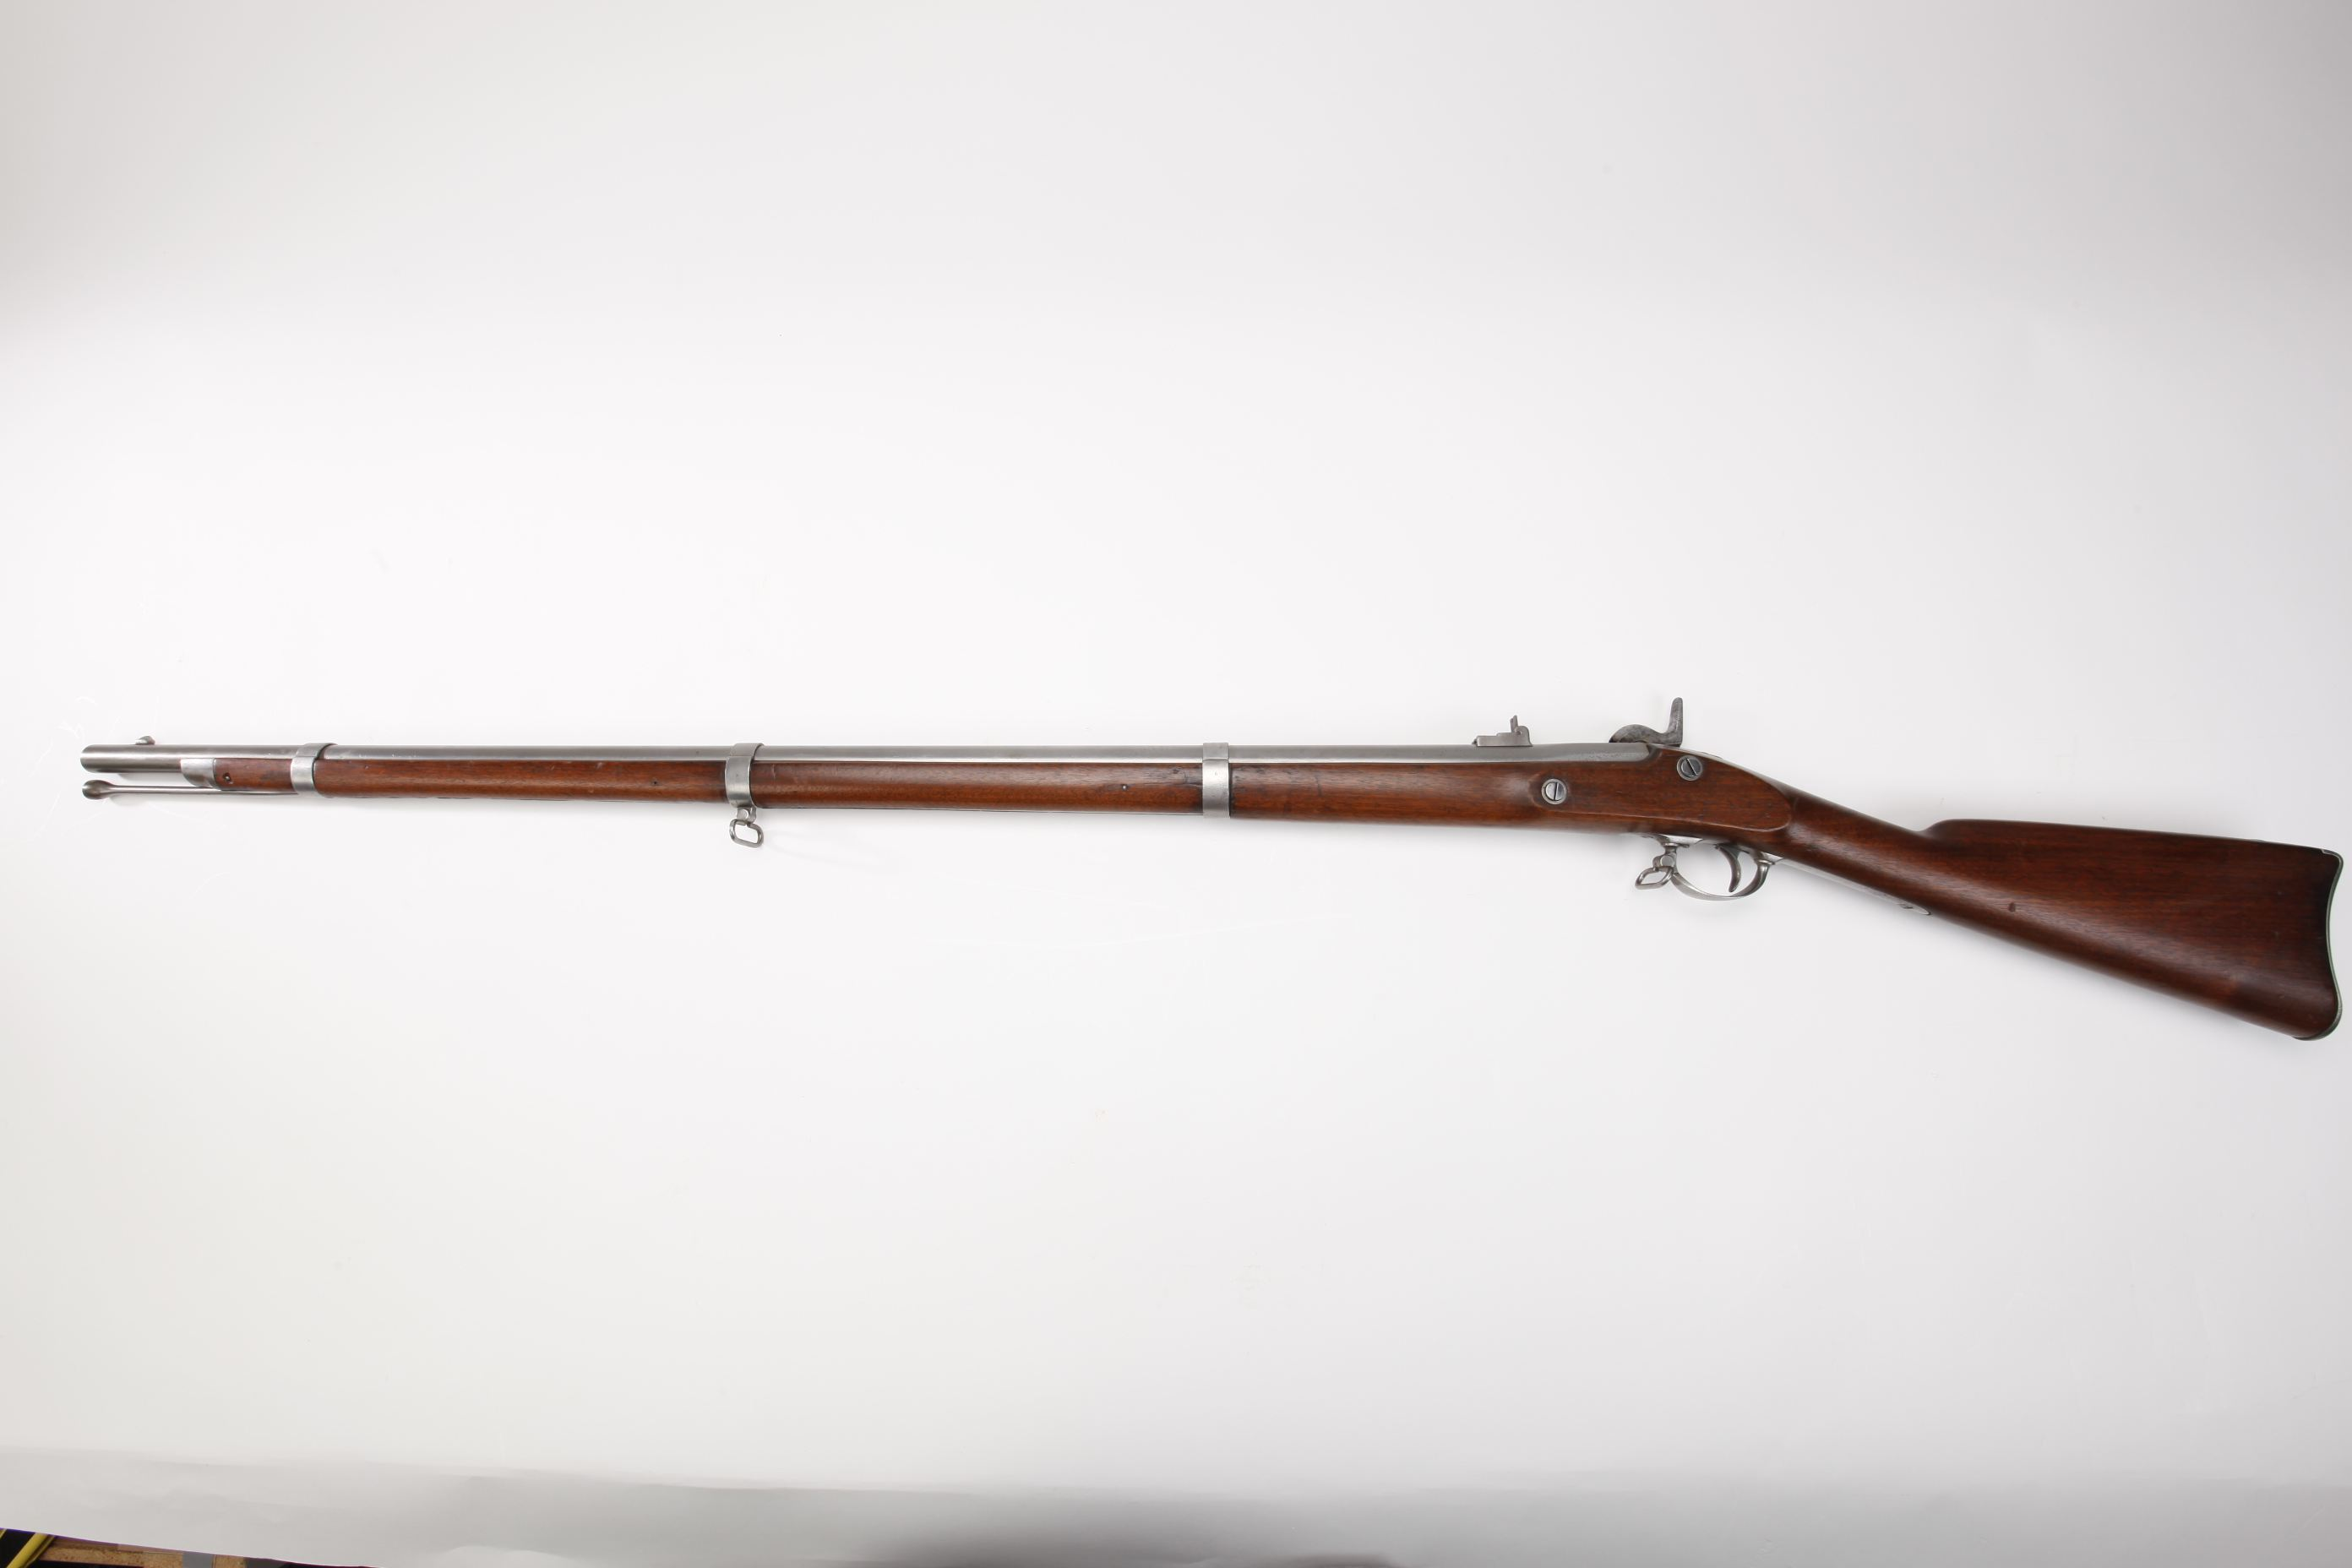 Alfred Jenks & Son Model 1861 Percussion Rifle-Musket